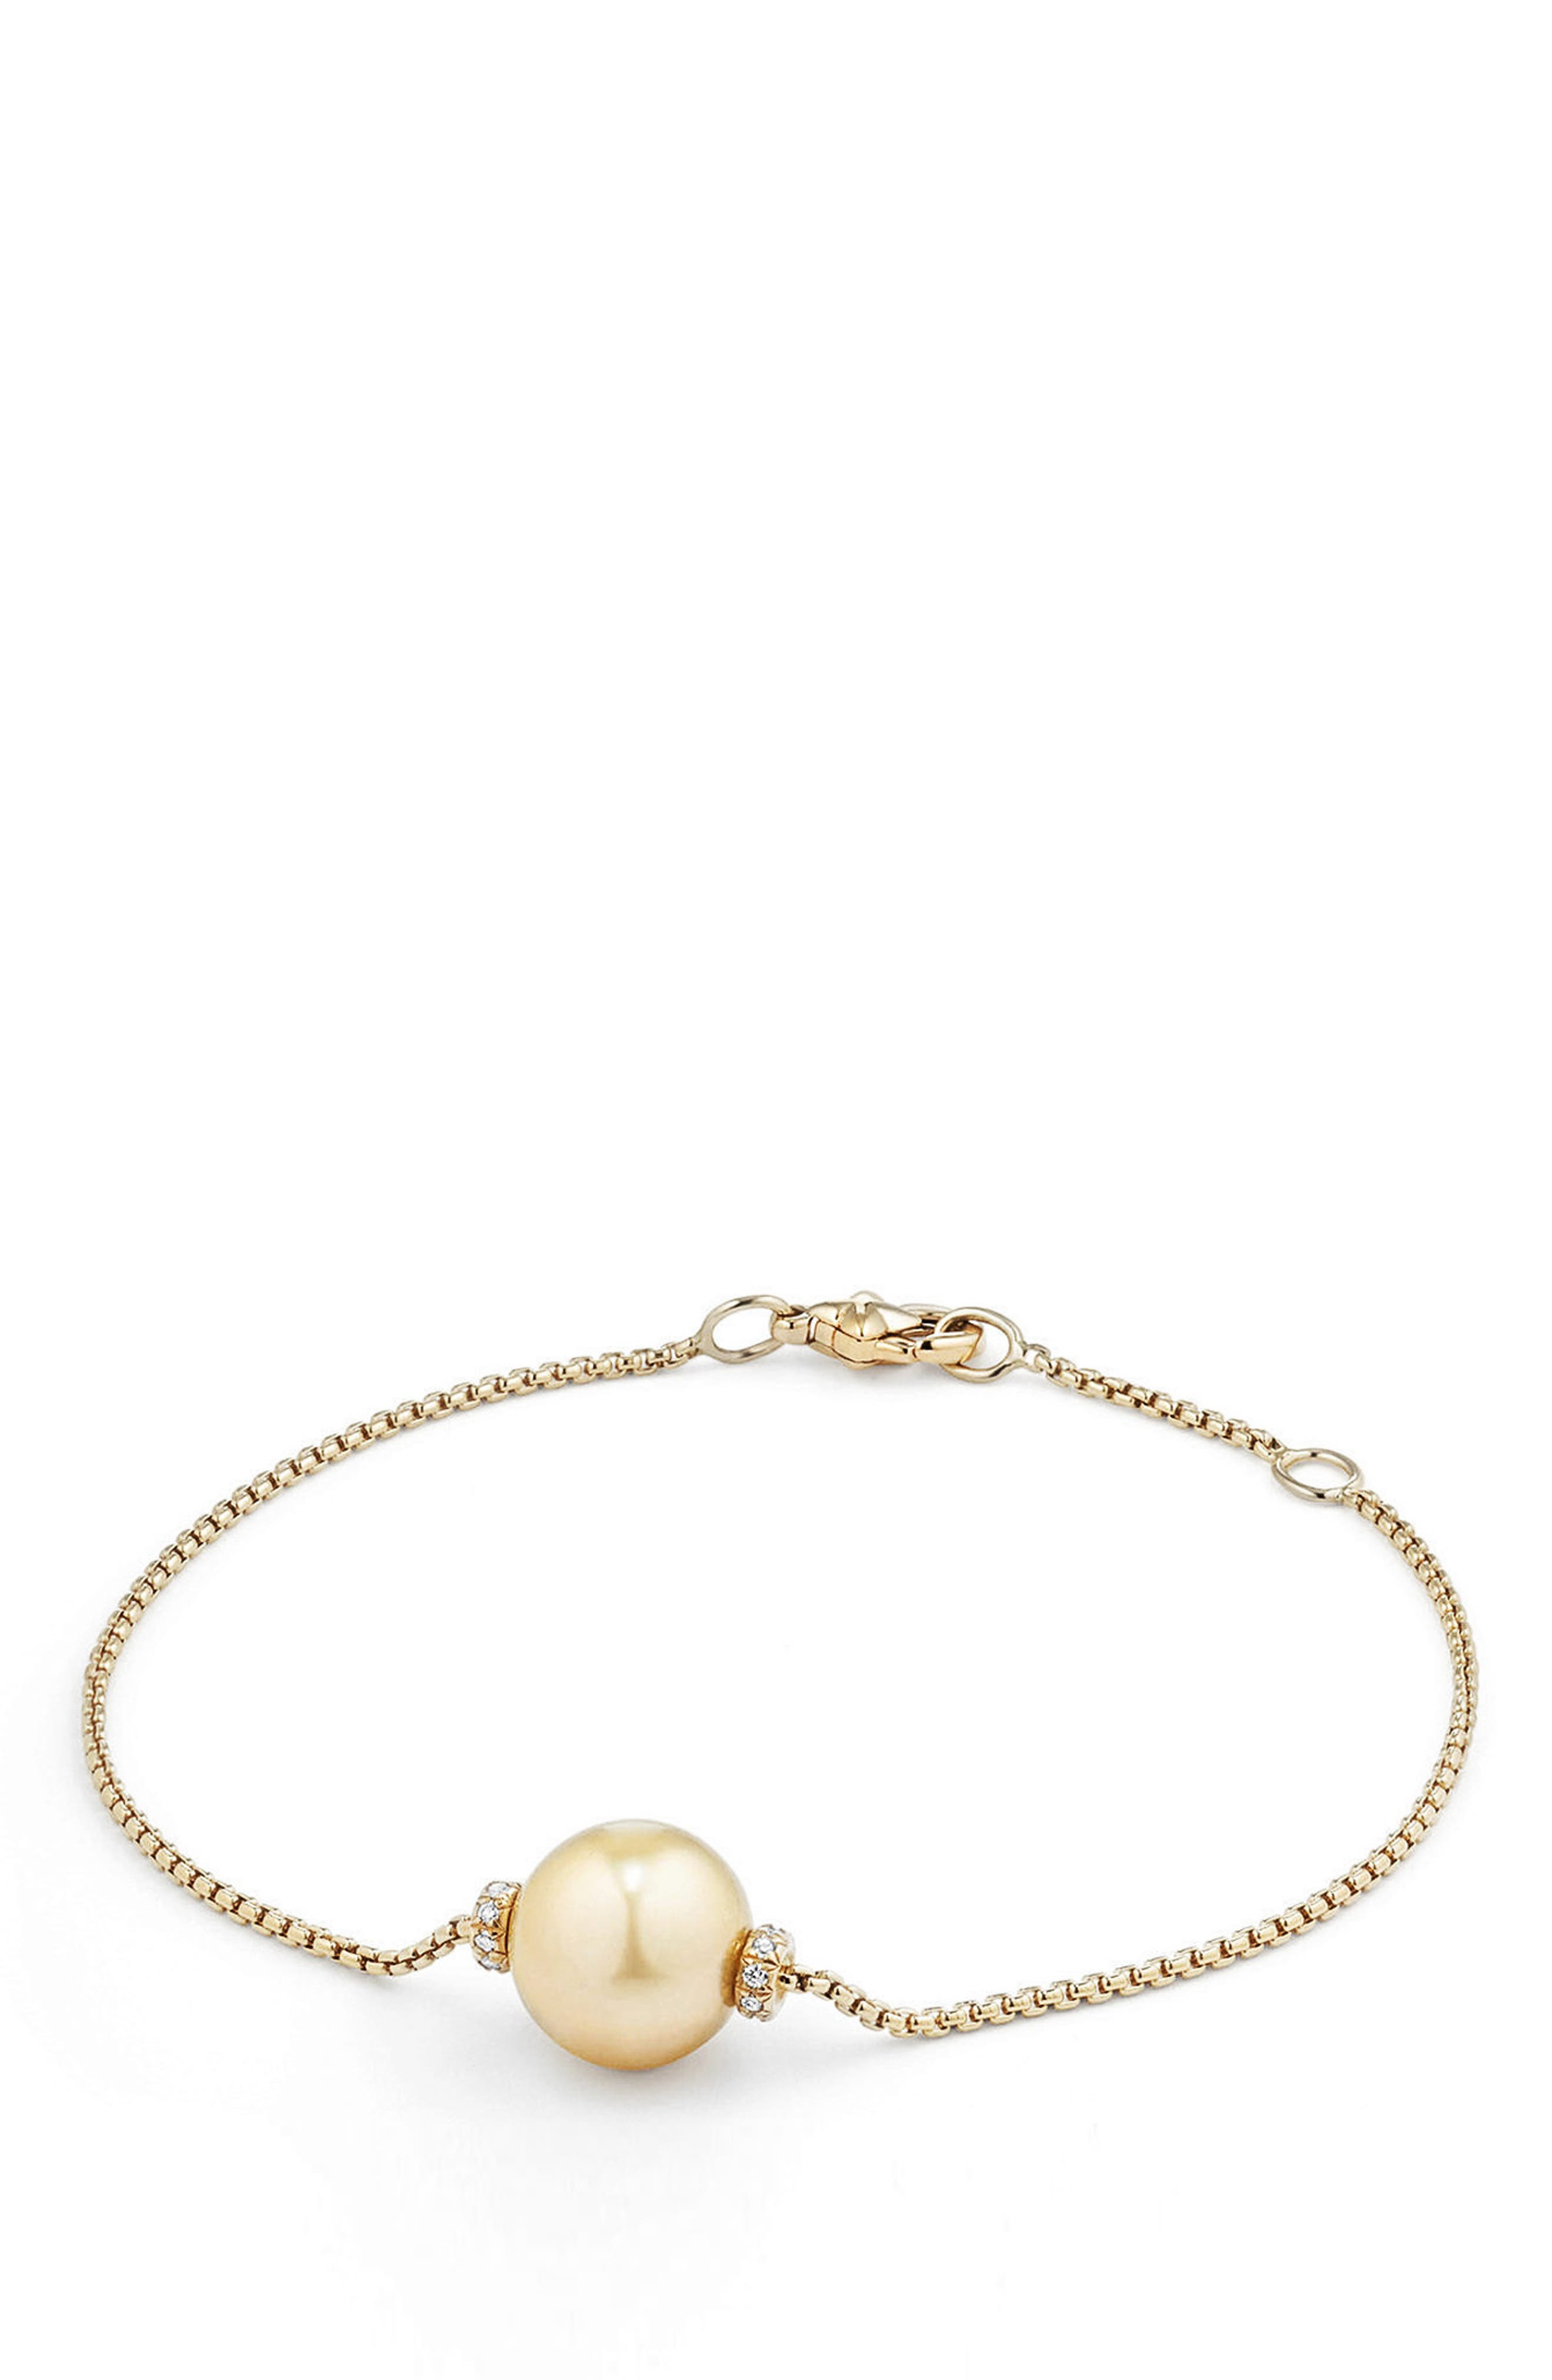 Solari Single Station Bracelet in 18k Gold with Diamonds & Pearl,                         Main,                         color, YELLOW GOLD/ SOUTH SEA YELLOW